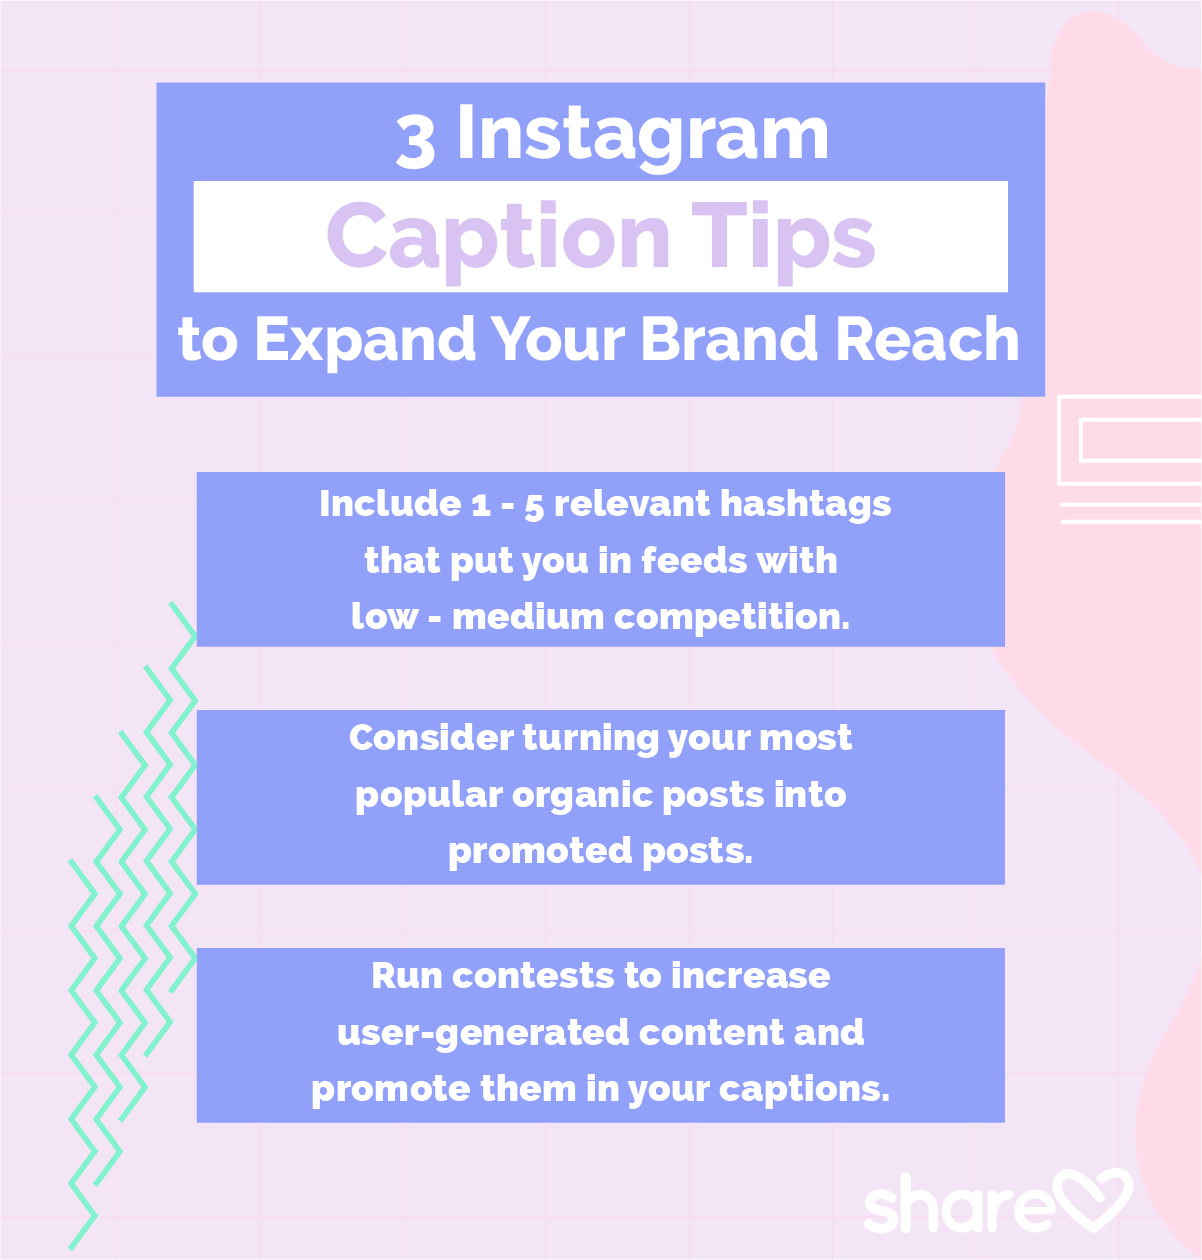 3 Instagram Caption Tips to Expand Your Brand Reach